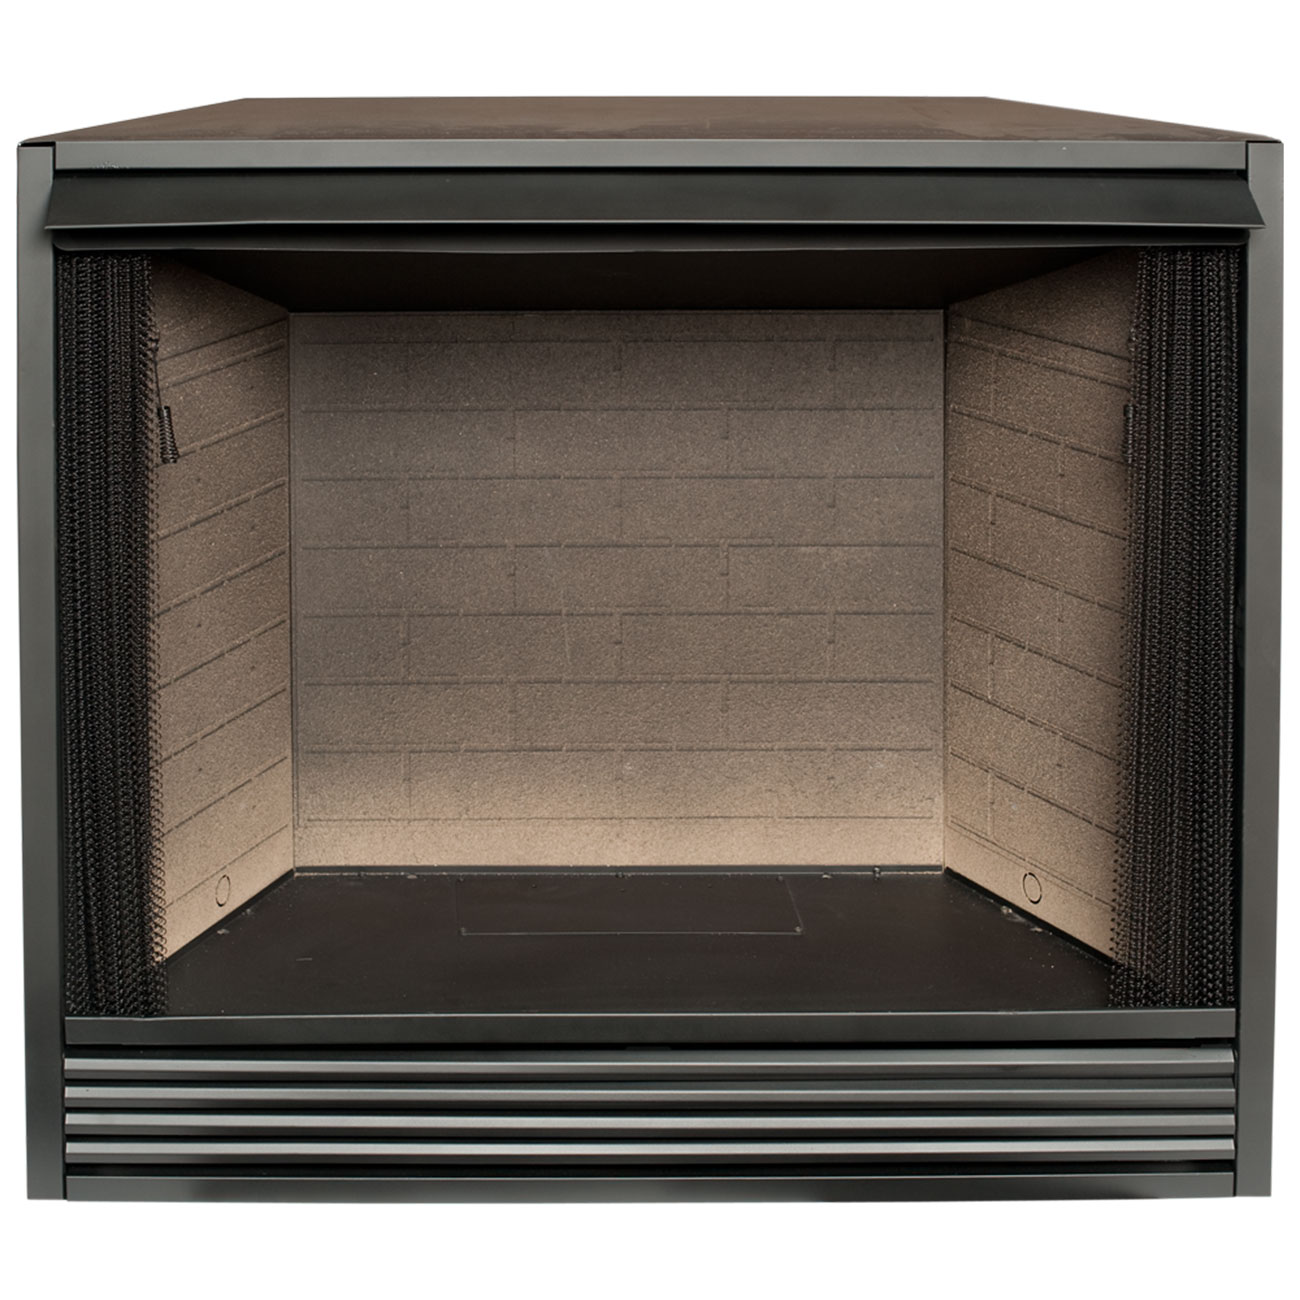 Procom 36 Ventless Gas Firebox Insert